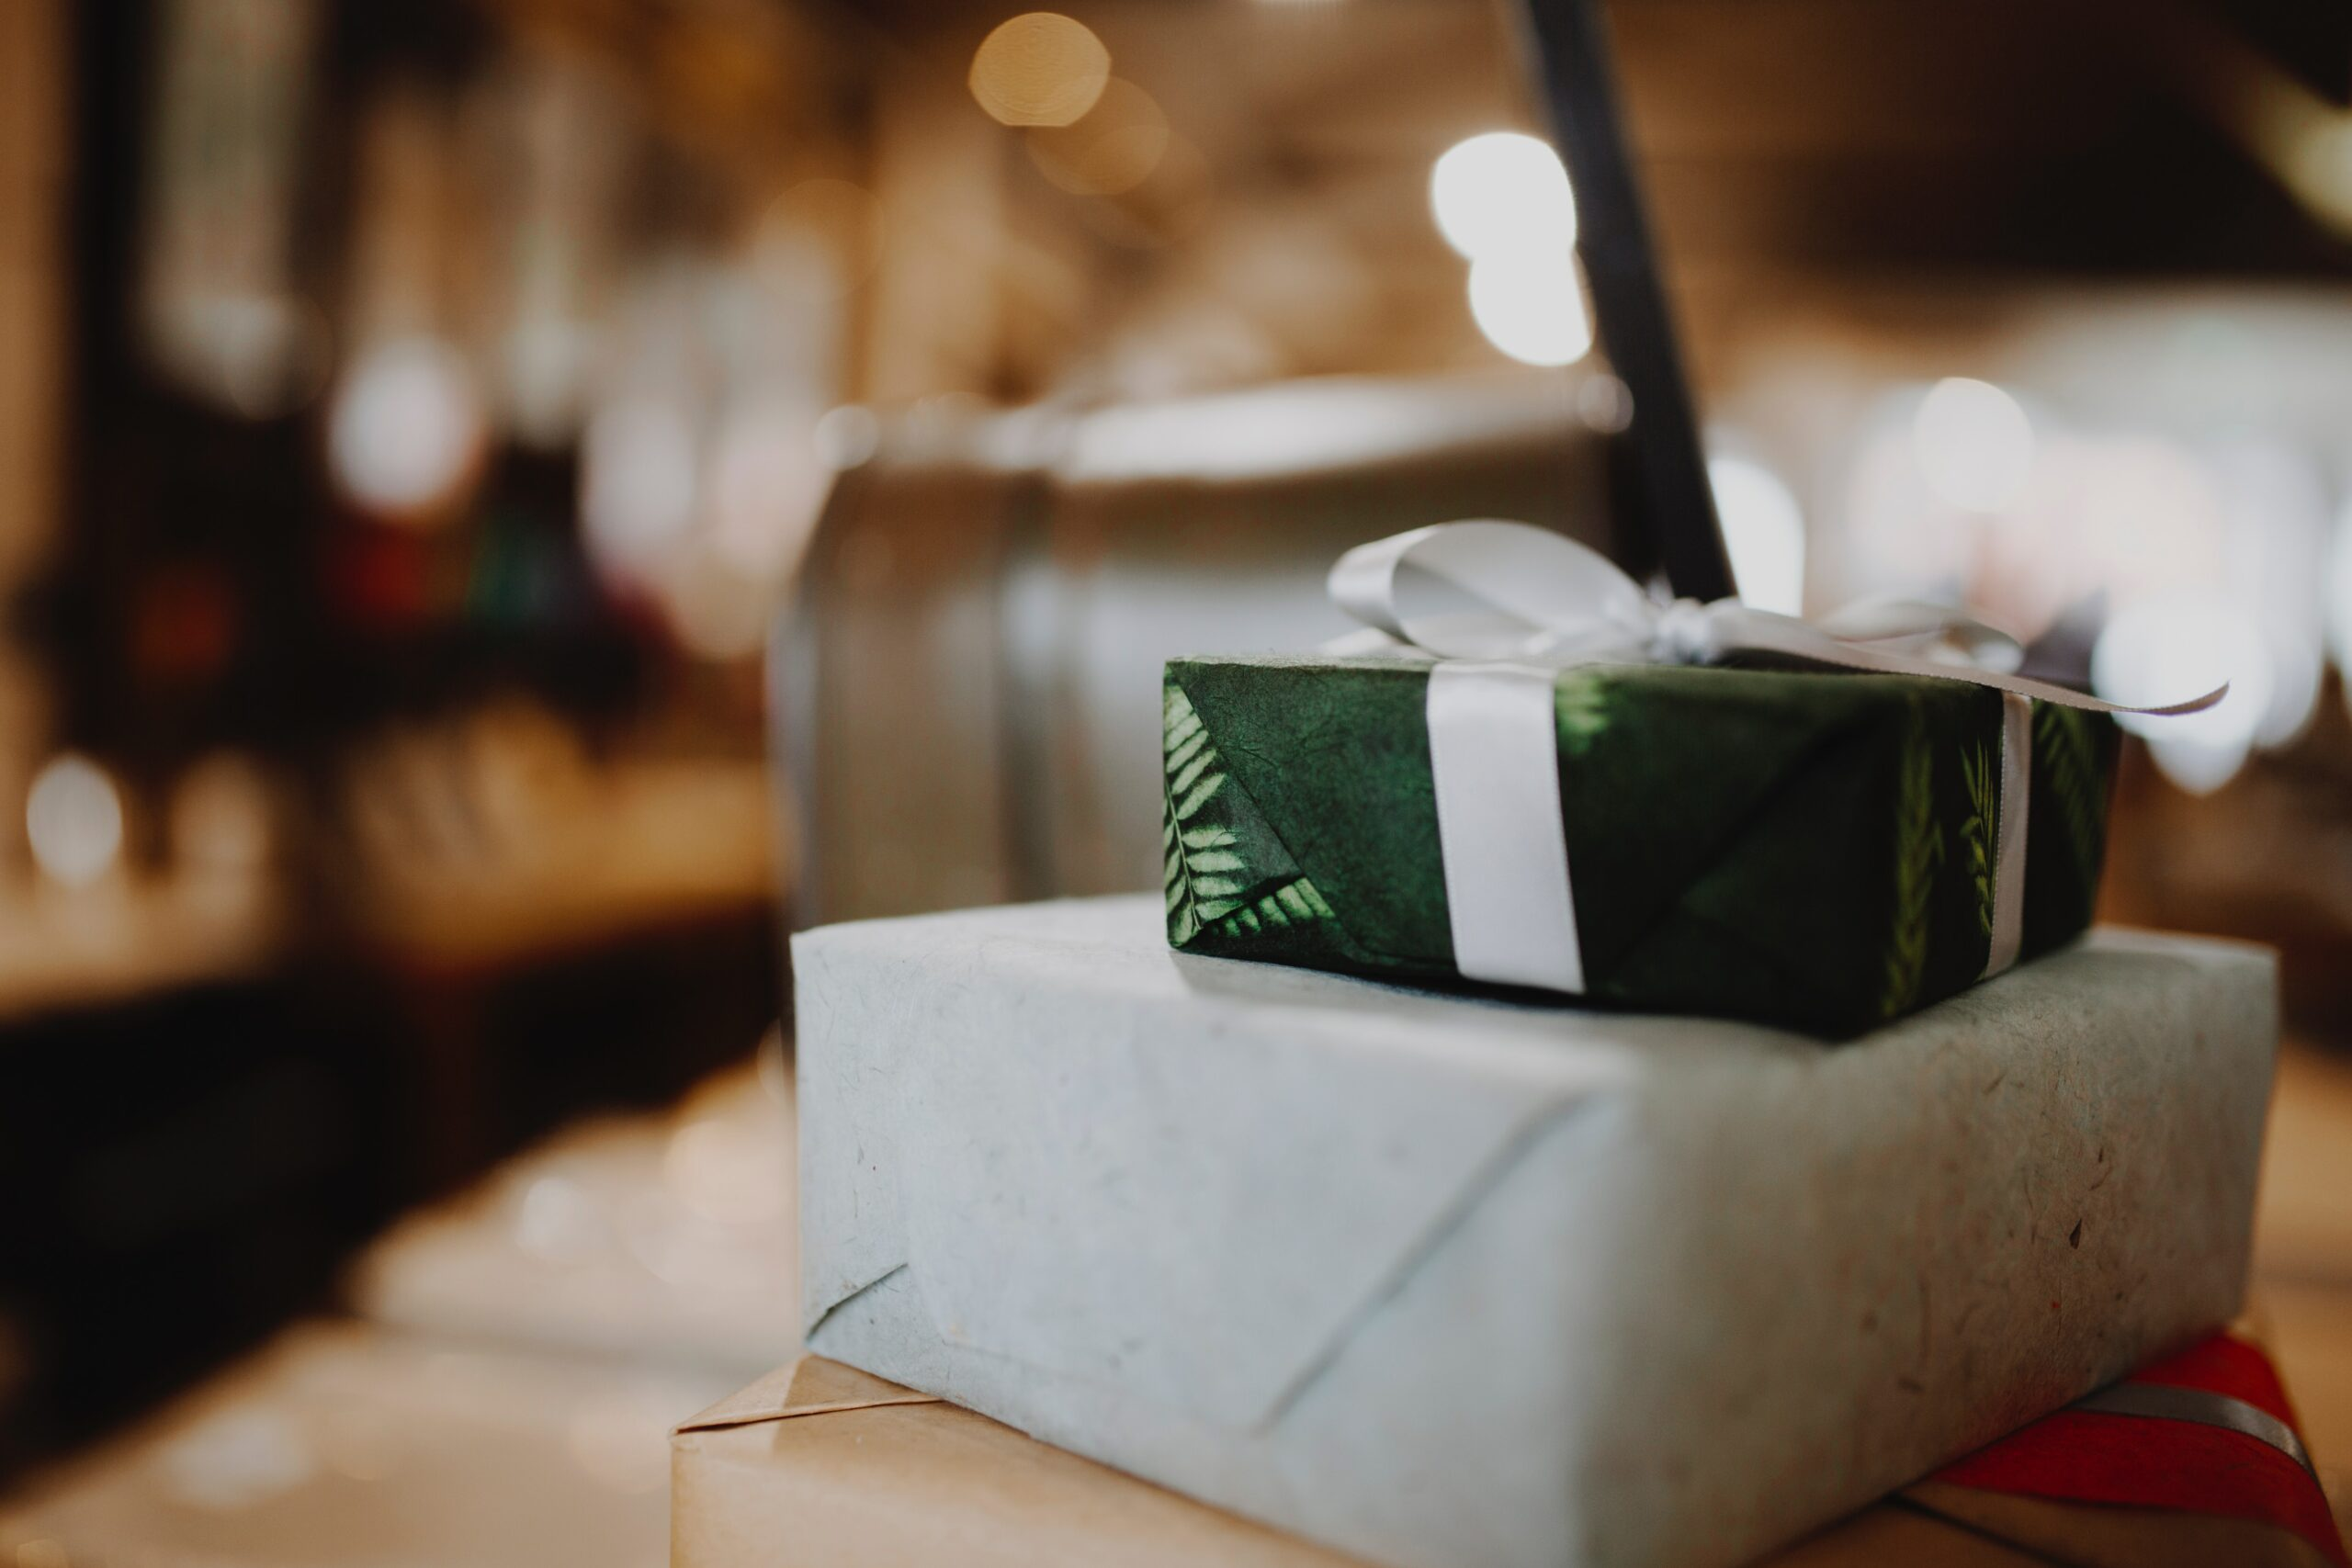 This image shows two gift-wrapped packages